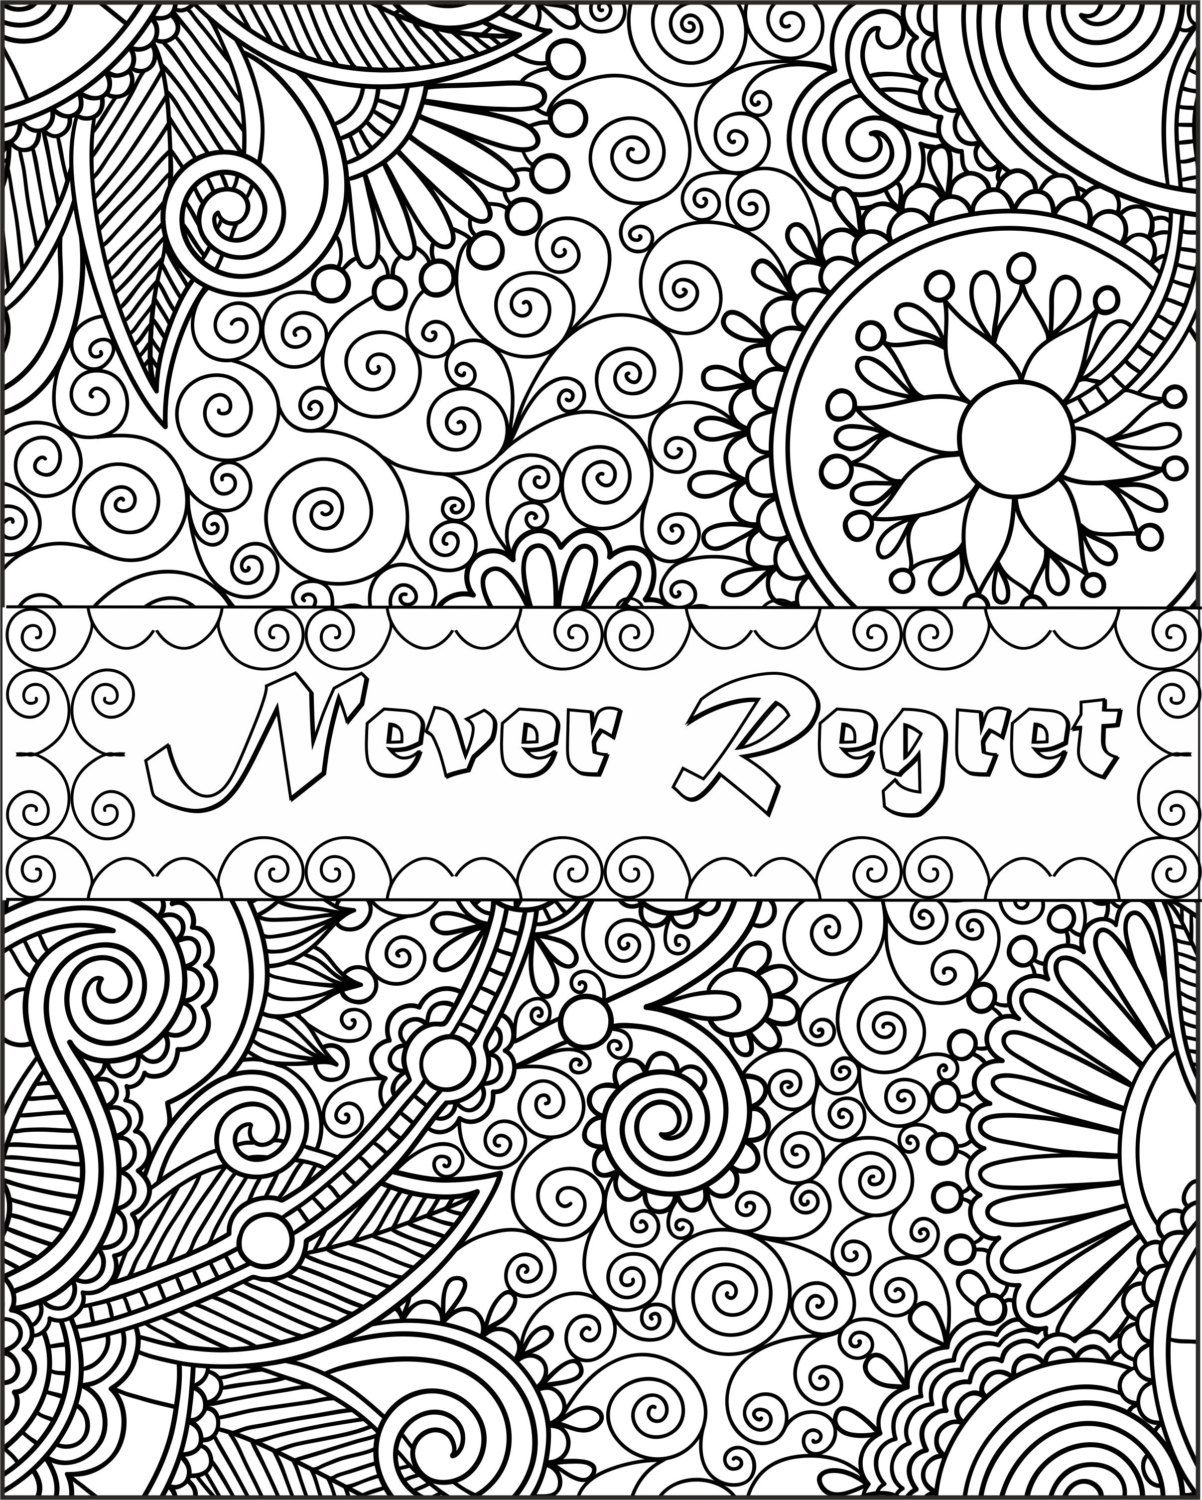 Never Regret Inspirational Fun Quotes Colouring Pages by Download Of Quote Coloring Pages Coloringsuite Download